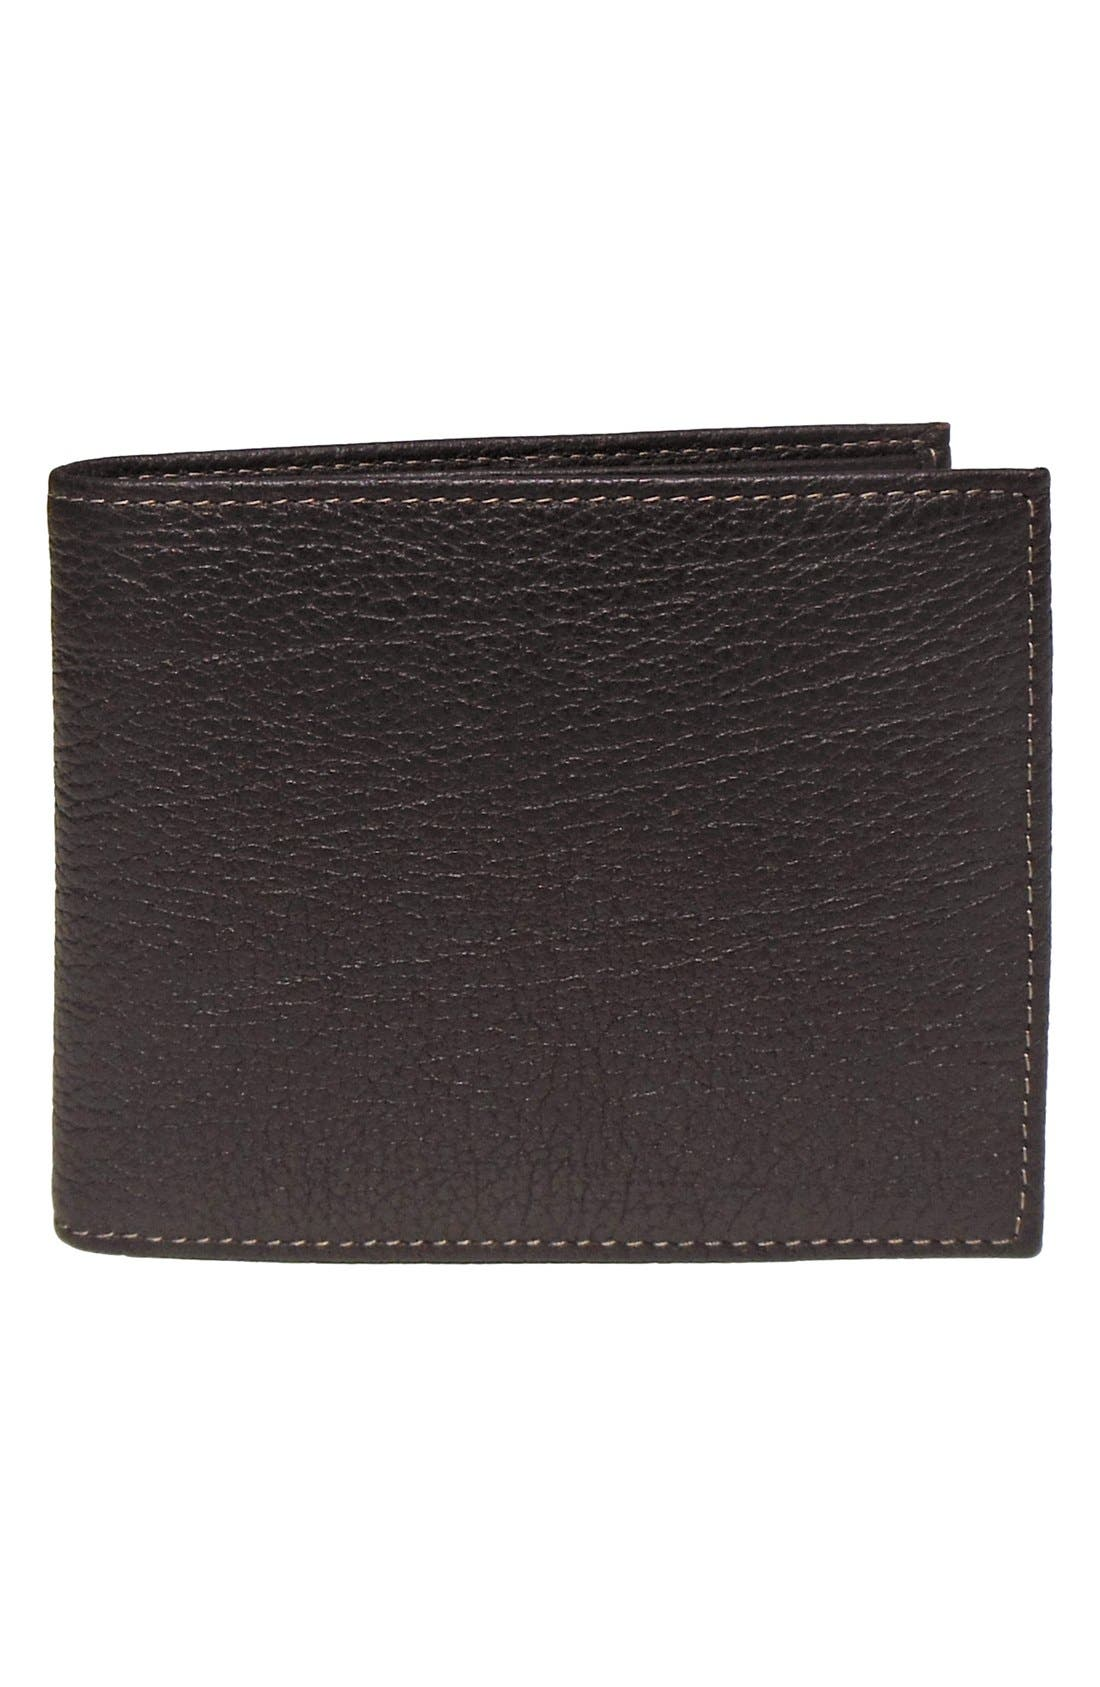 Alternate Image 1 Selected - Boconi Leather Wallet